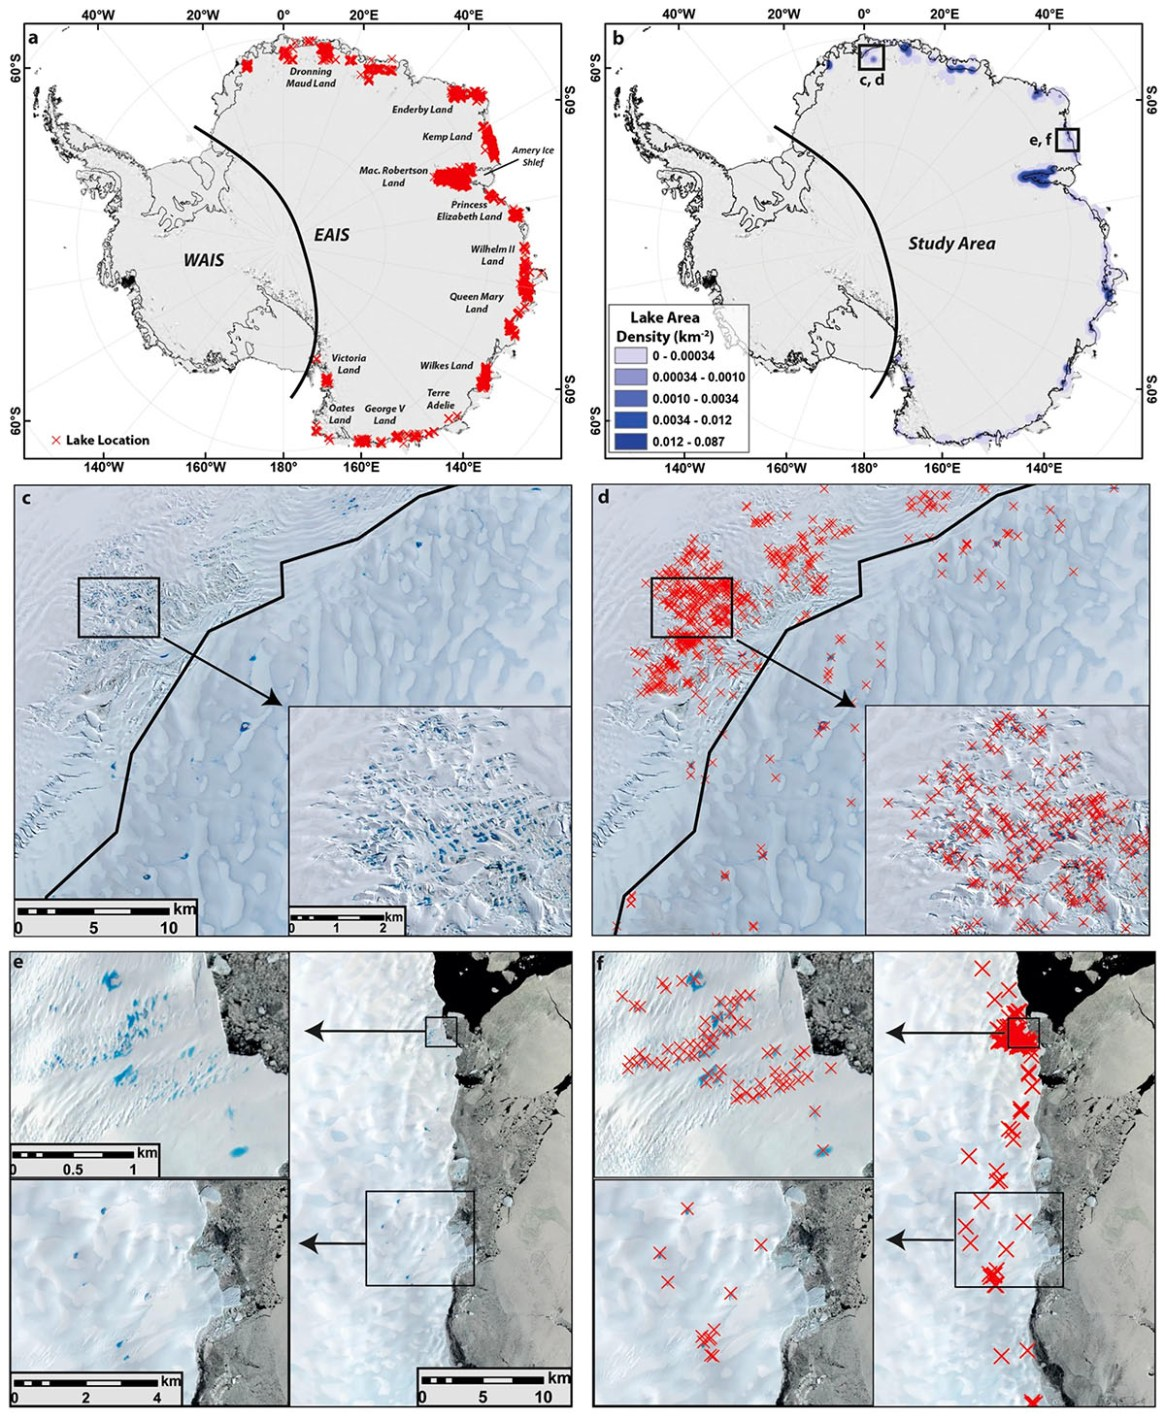 """Fig. 5: """"Location and density of supraglacial lakes (SGLs) in East Antarctica, alongside examples. (a) Location of 65,459 mapped lakes that appeared on imagery from January 2017, each marked by a red cross. (b) Lake density map showing the cumulative area of SGLs within 1 km2 cells using a 50km search radius. (c,d) Sentinel 2A satellite image (12th Jan 2017) of the high density of lakes on the Jutulstraumen Glacier, Dronning Maud Land. Note that lakes have developed above and beyond the grounding line (thick black line), but there is a clustering of lakes 5–10km down-ice from the grounding line. (e,f) Sentinel 2A satellite image (27th Jan 2017) of clusters of lakes towards the ice sheet margin in Kemp Land."""" (Stokes et al., click on the image to see the full report)."""